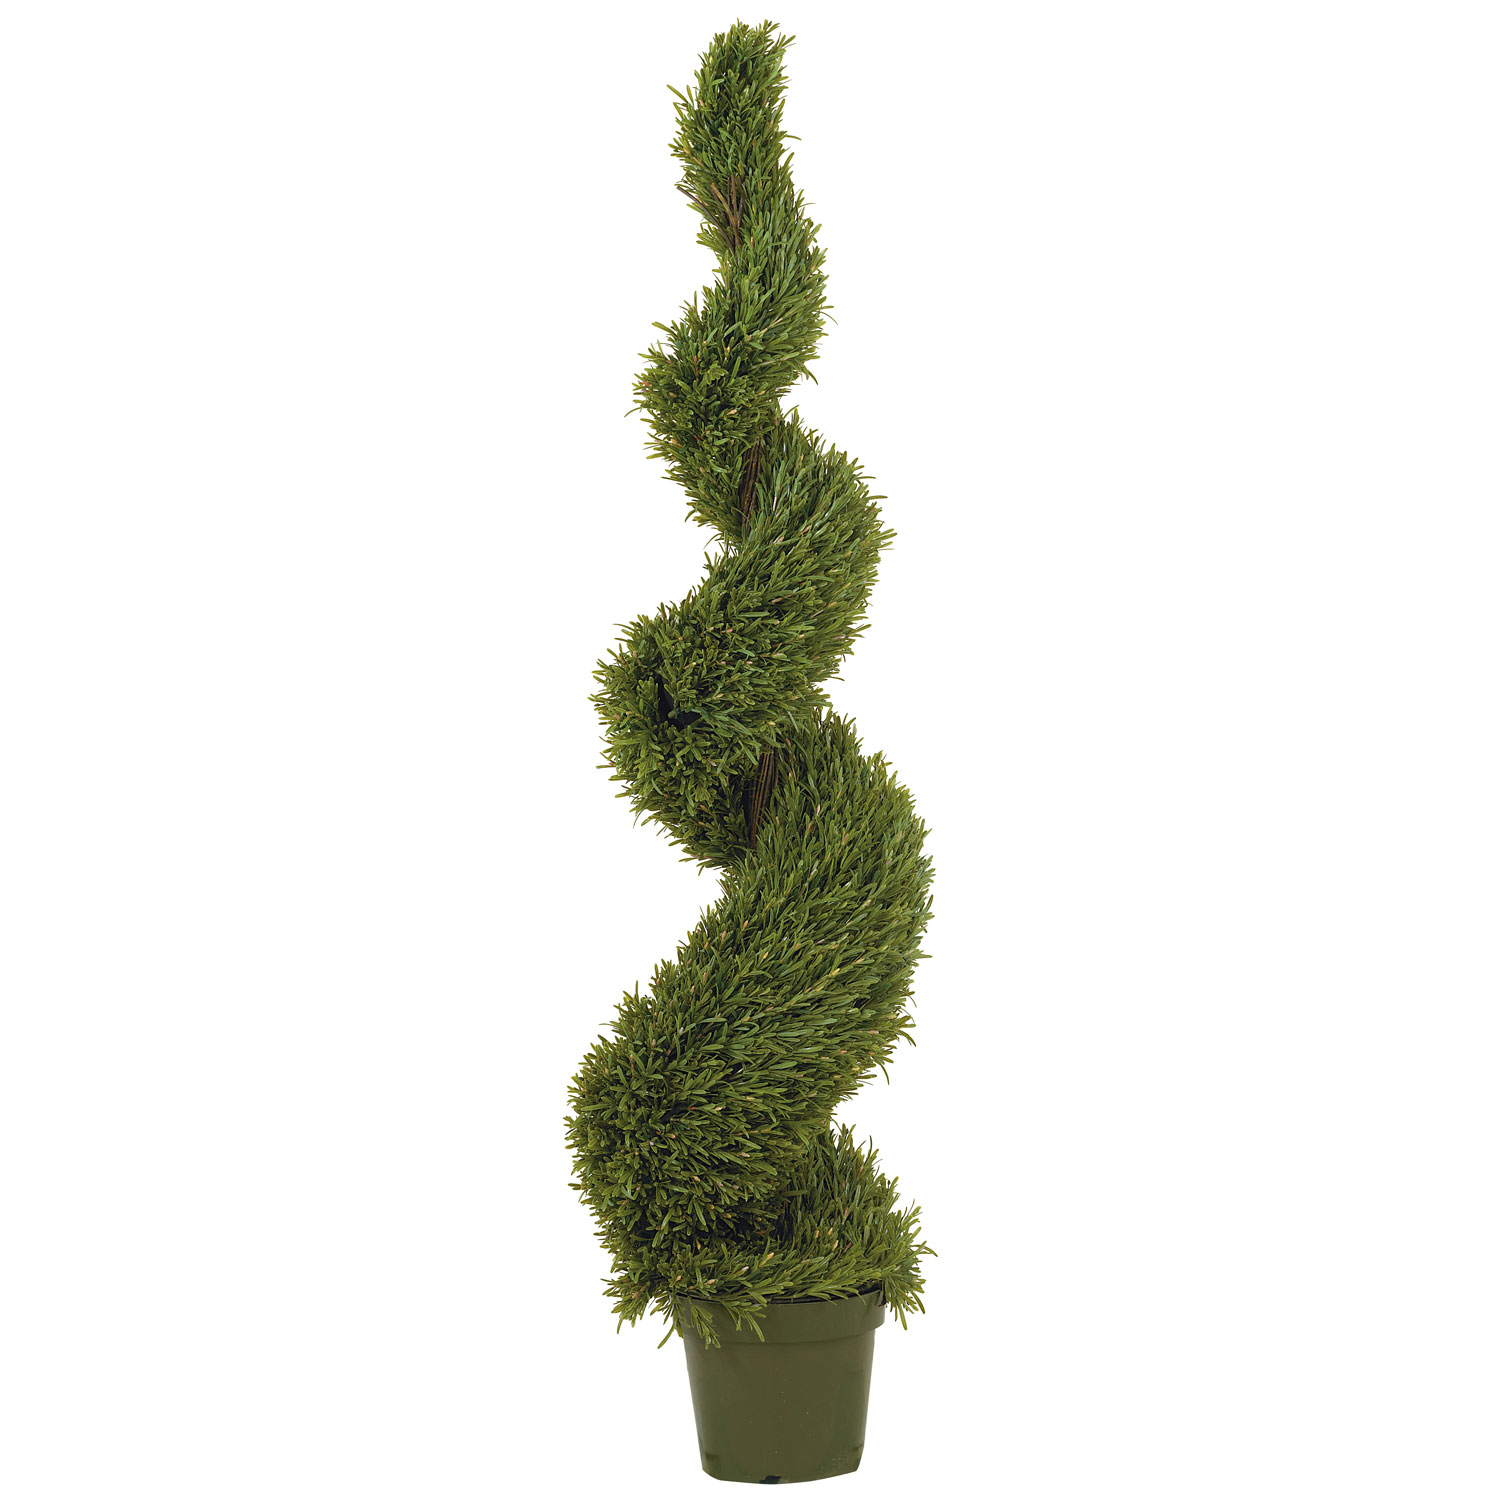 Topiary Spiral Trees: 5 Foot Rosemary Spiral Topiary: Potted